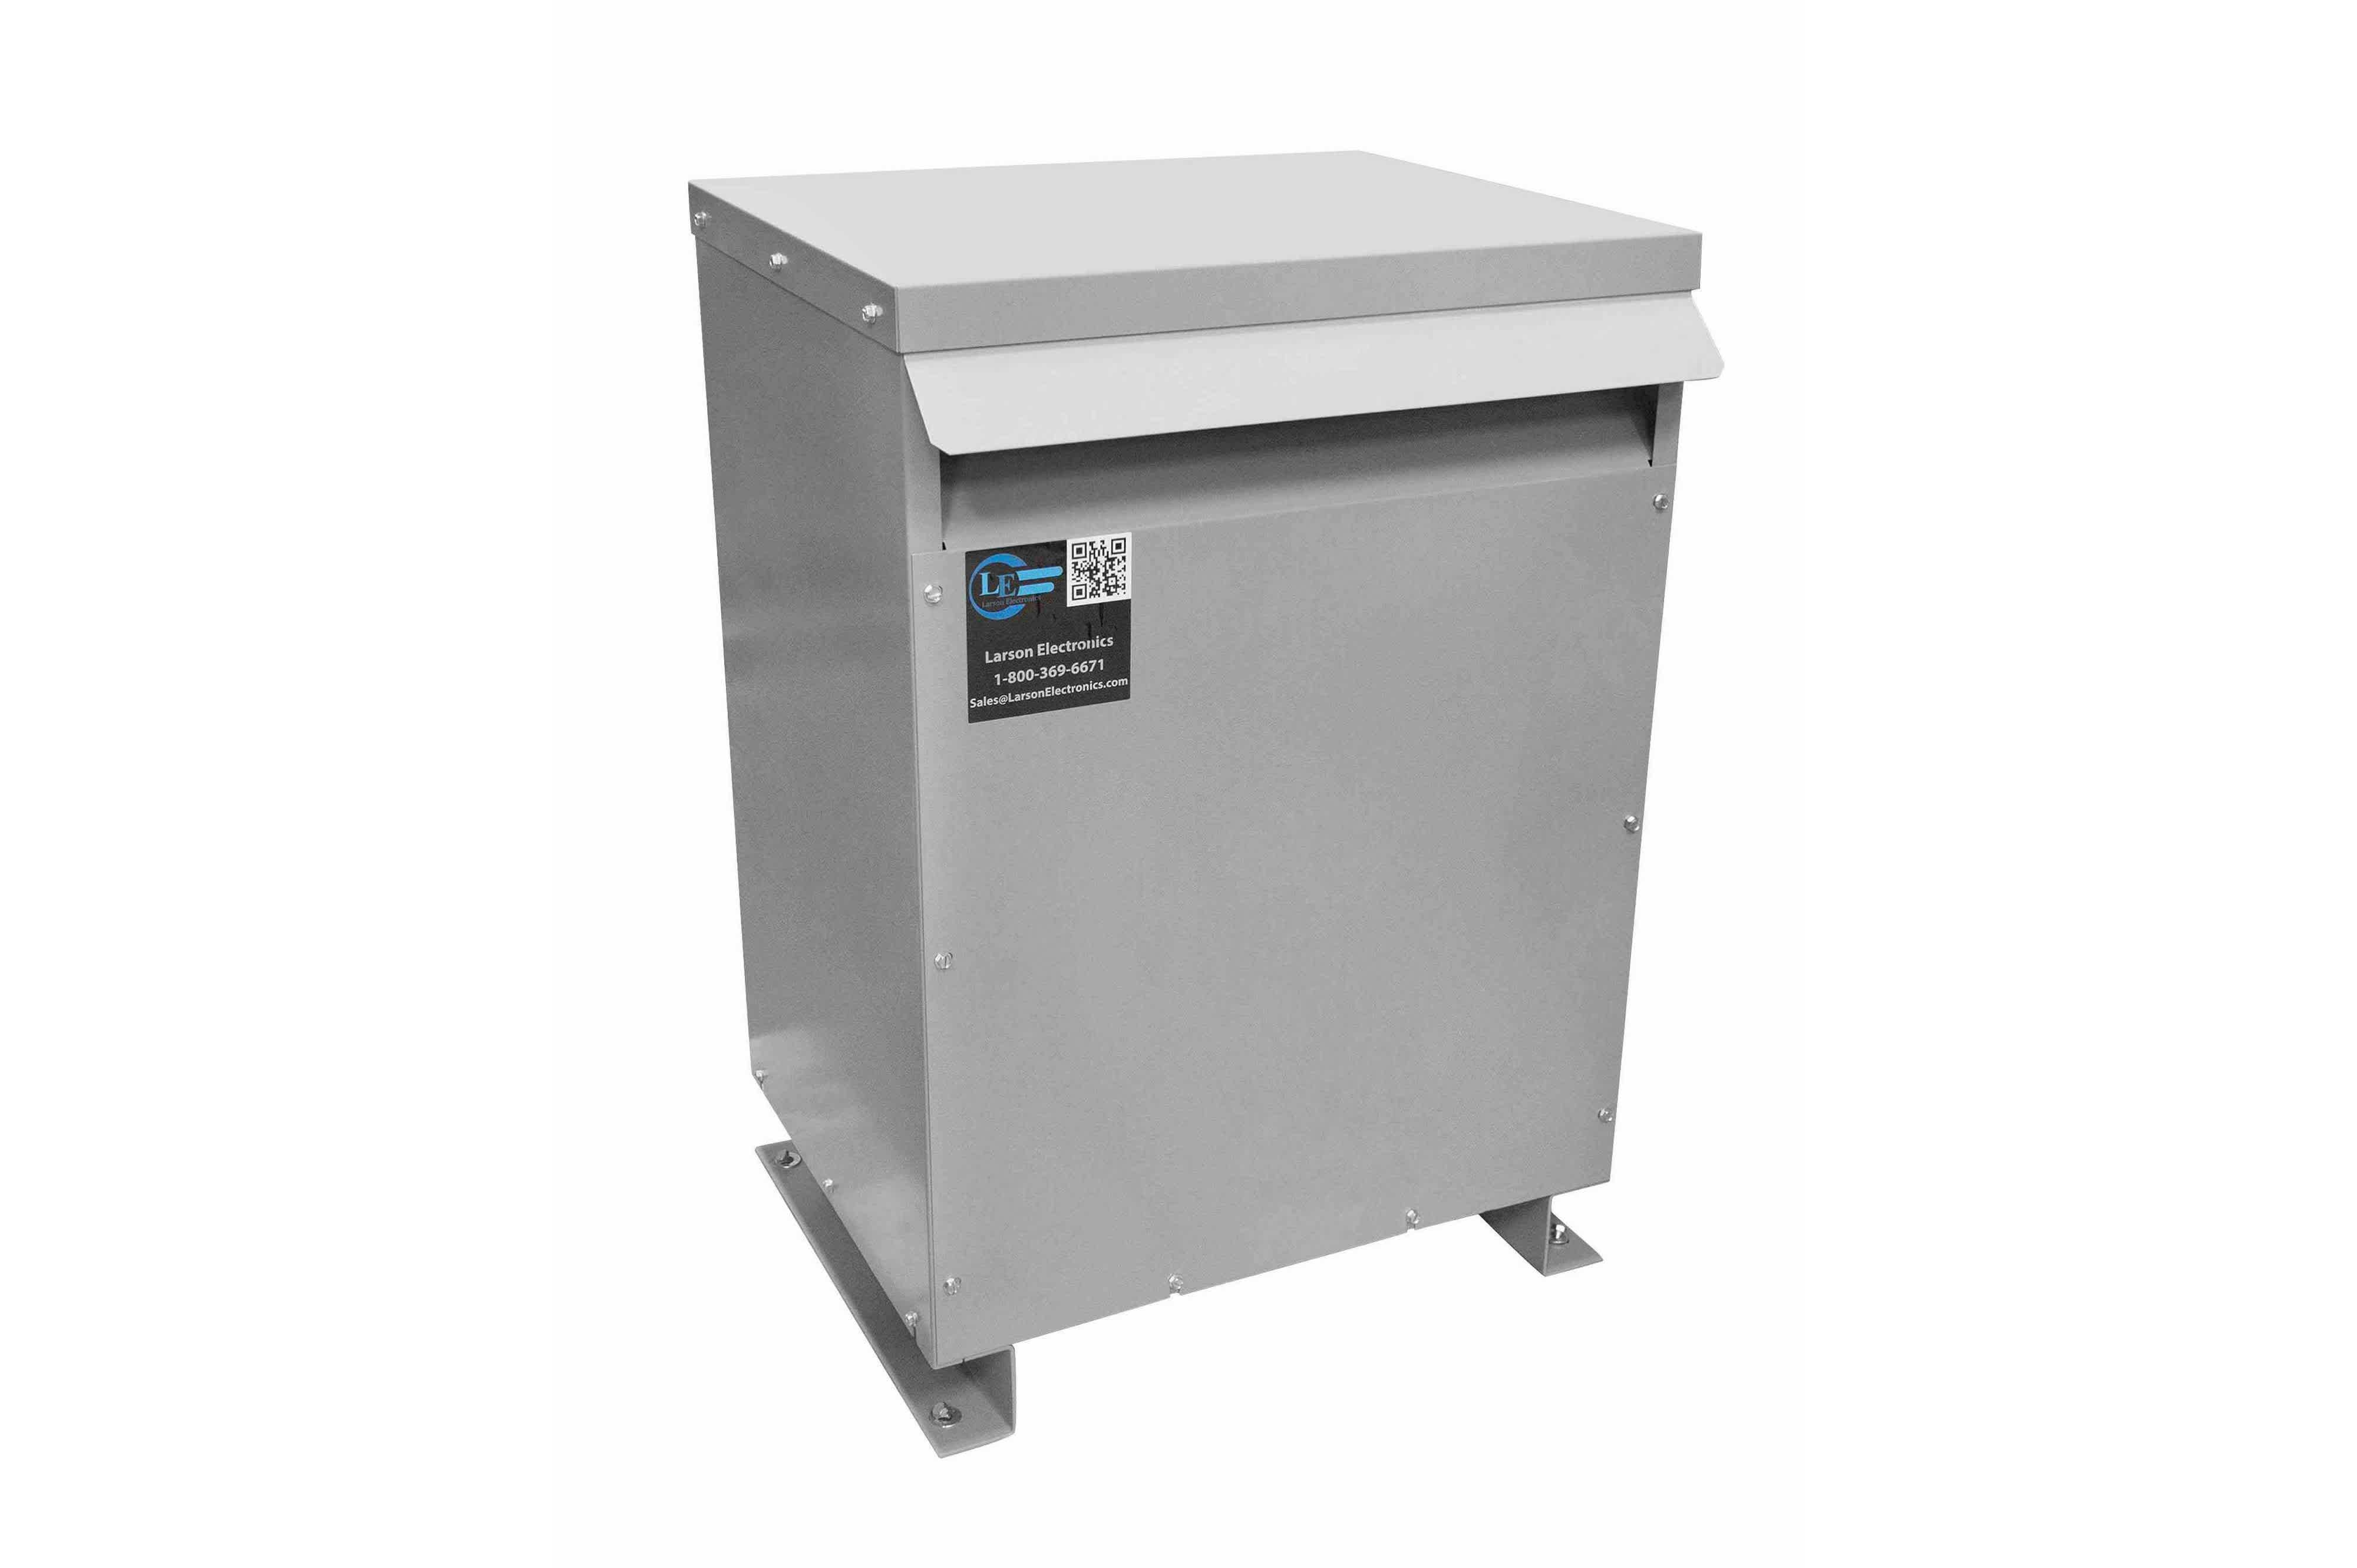 225 kVA 3PH Isolation Transformer, 240V Delta Primary, 480V Delta Secondary, N3R, Ventilated, 60 Hz